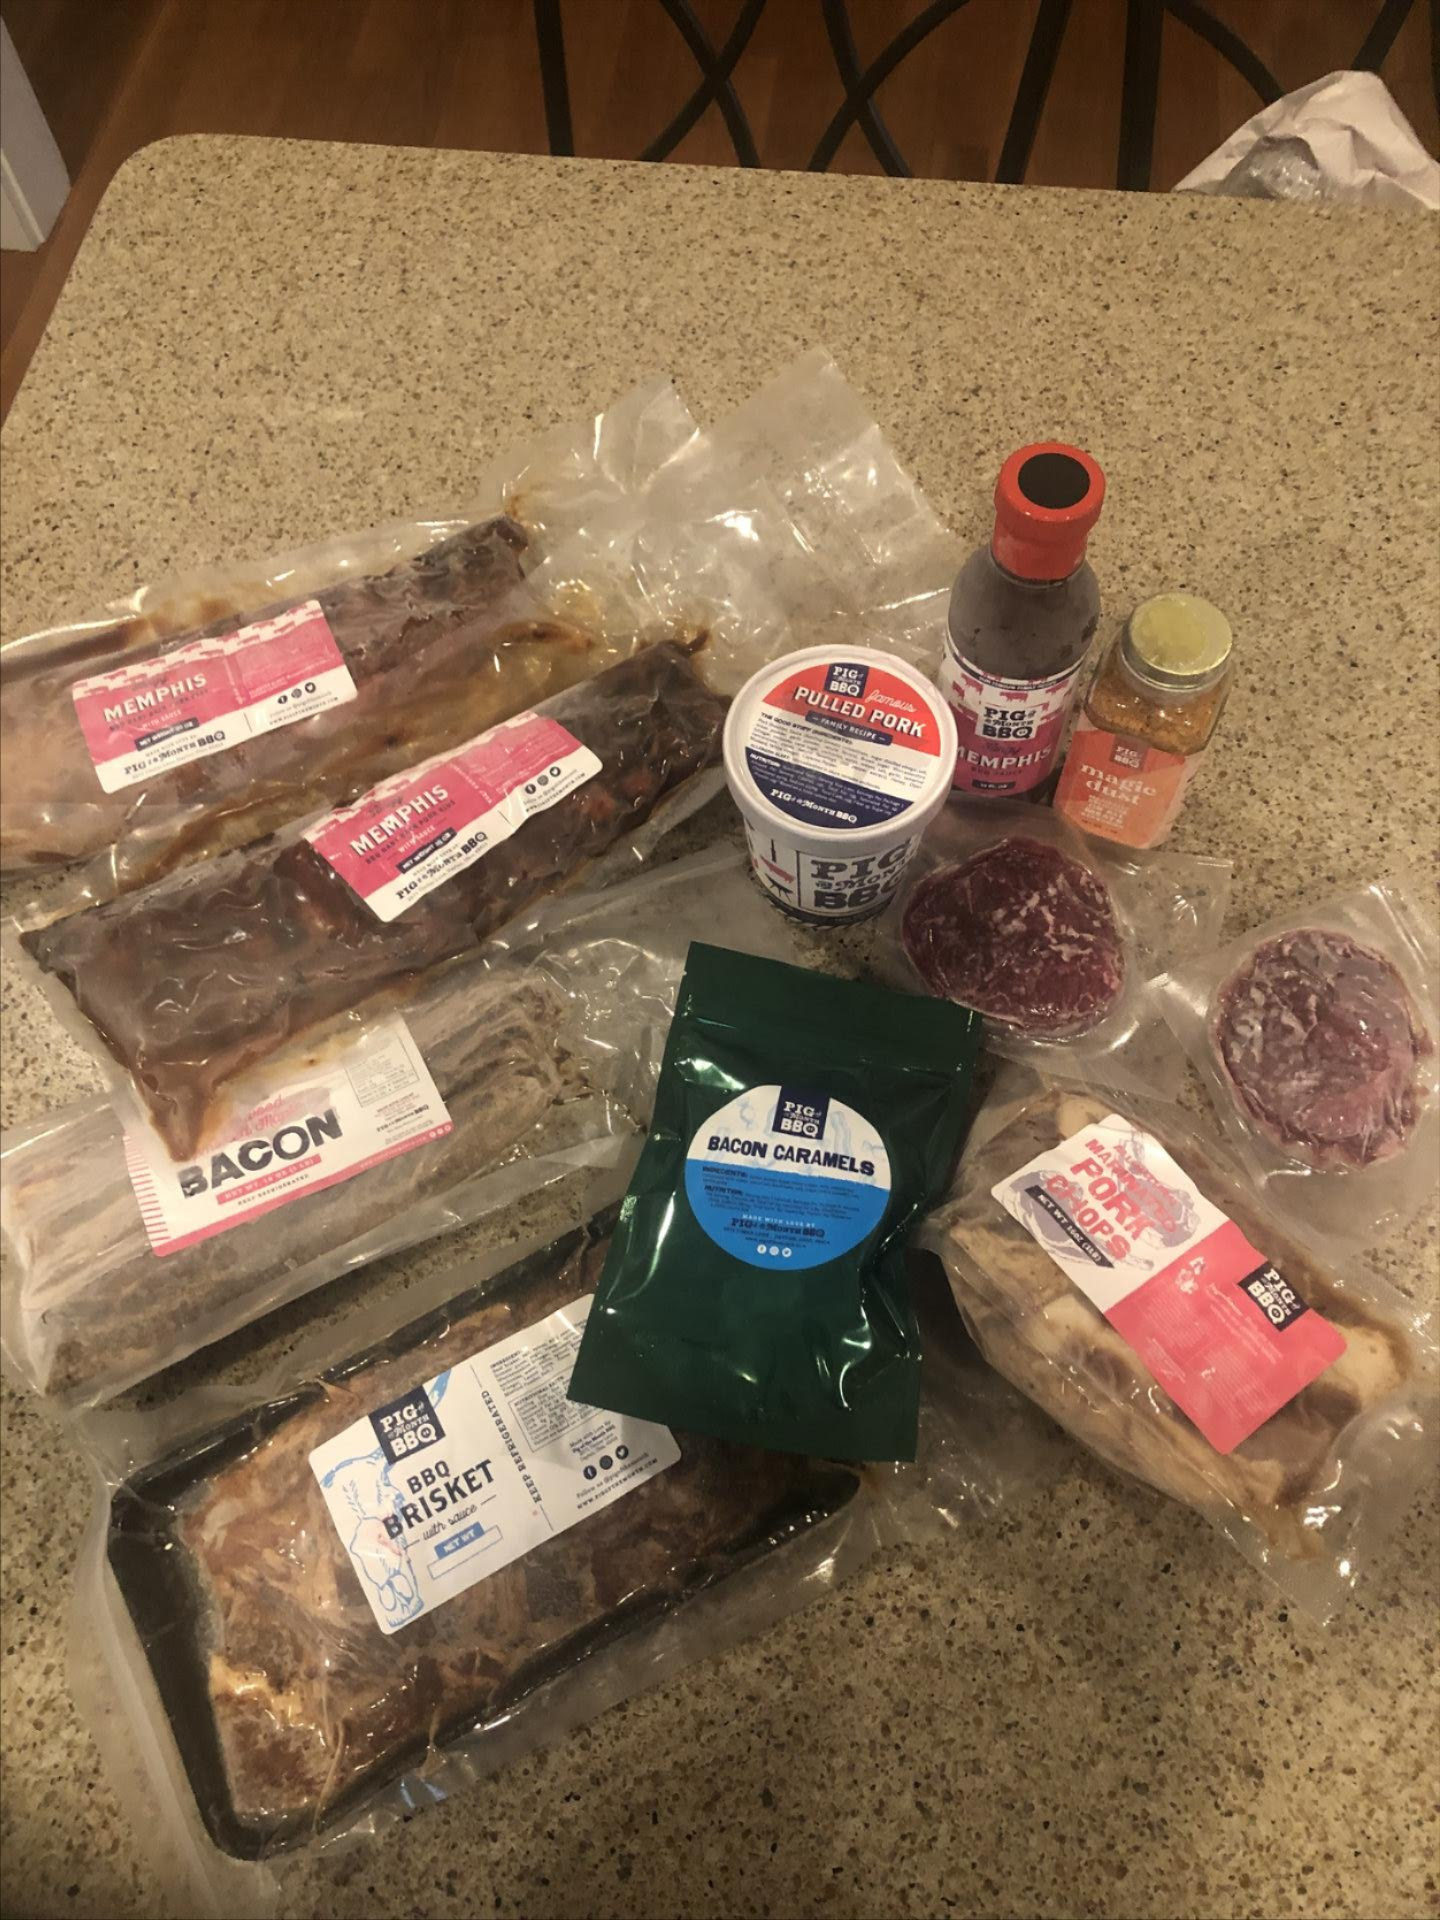 elizabeth's brisket, bacon, pulled pork, ribs, bacon caramels, sauces, and other treats from the subscription